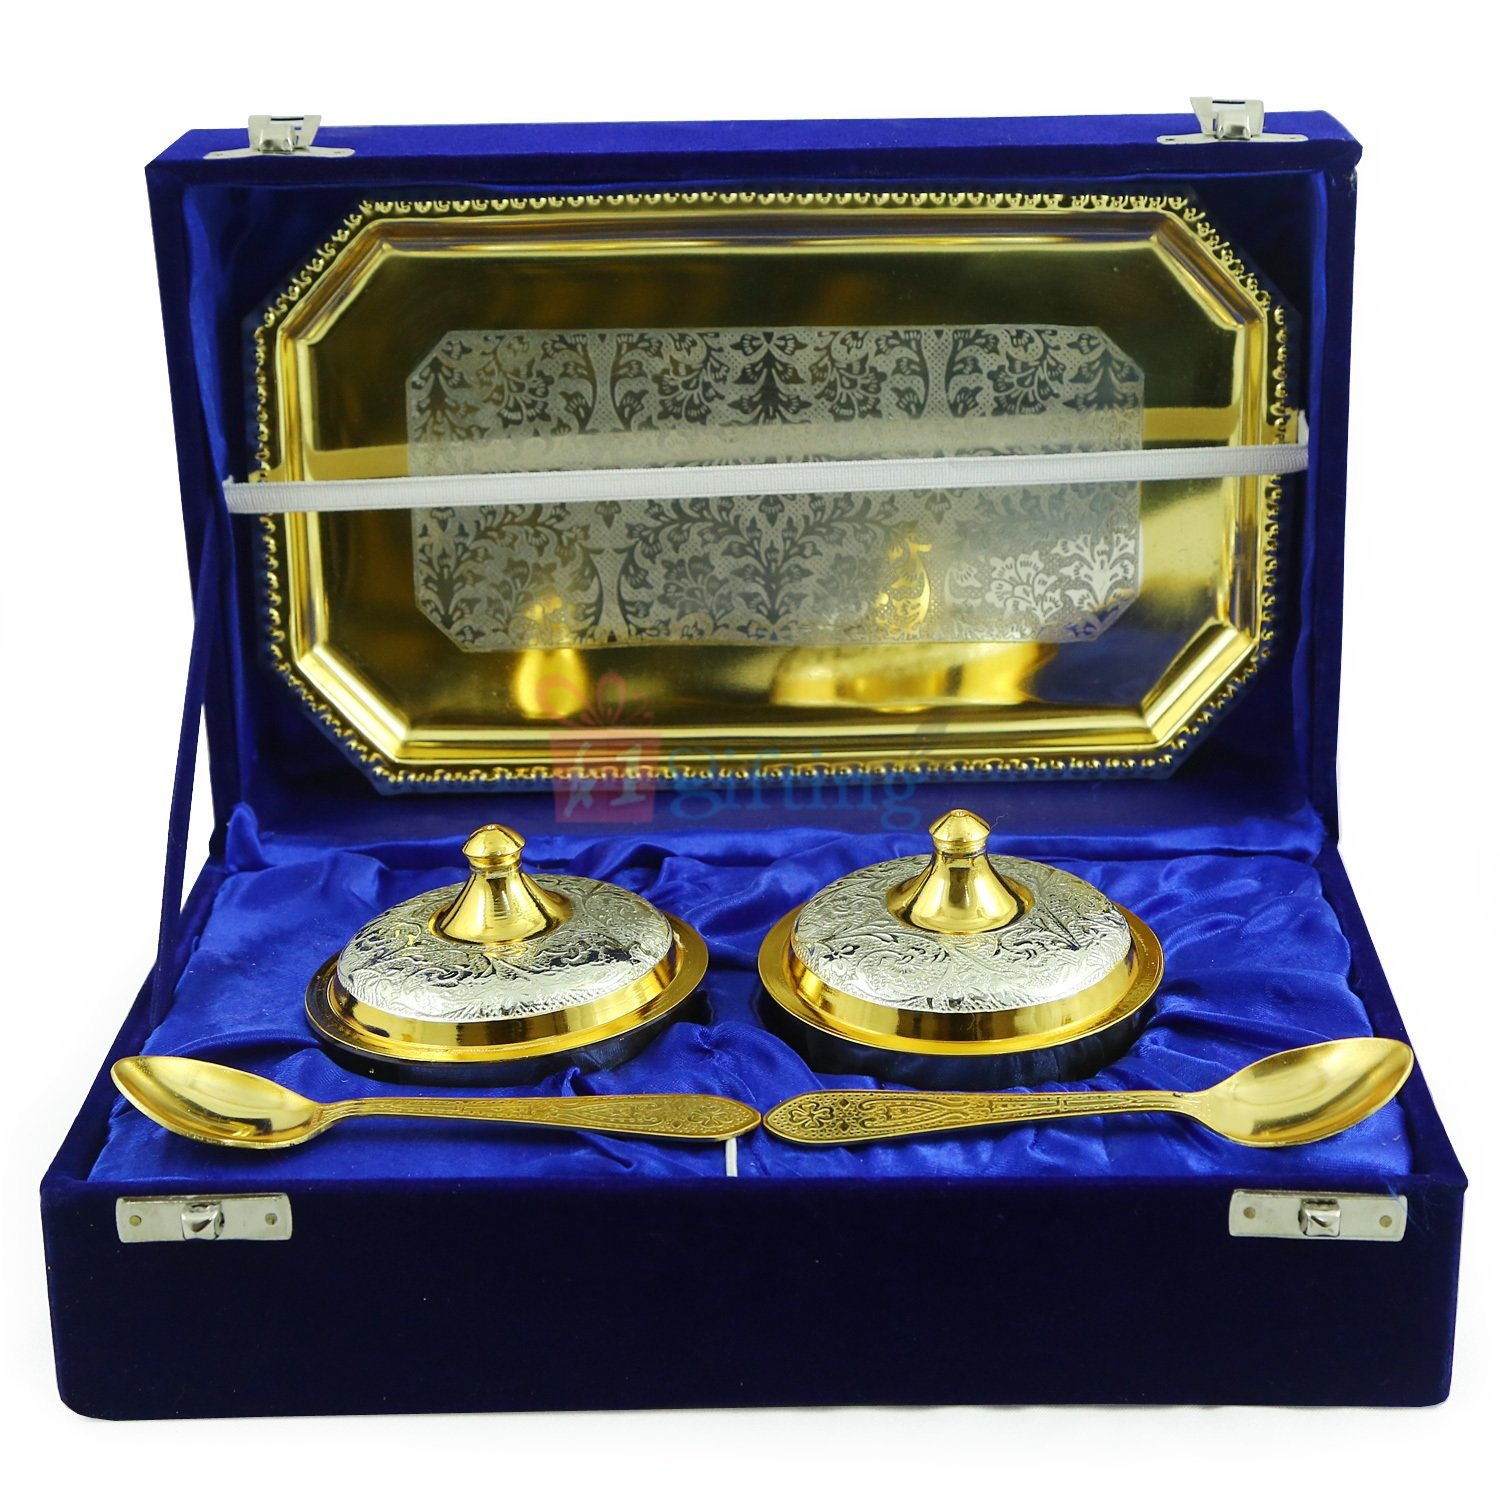 Royal Platter or Supari Dan Set Golden Silver Plated with Tray